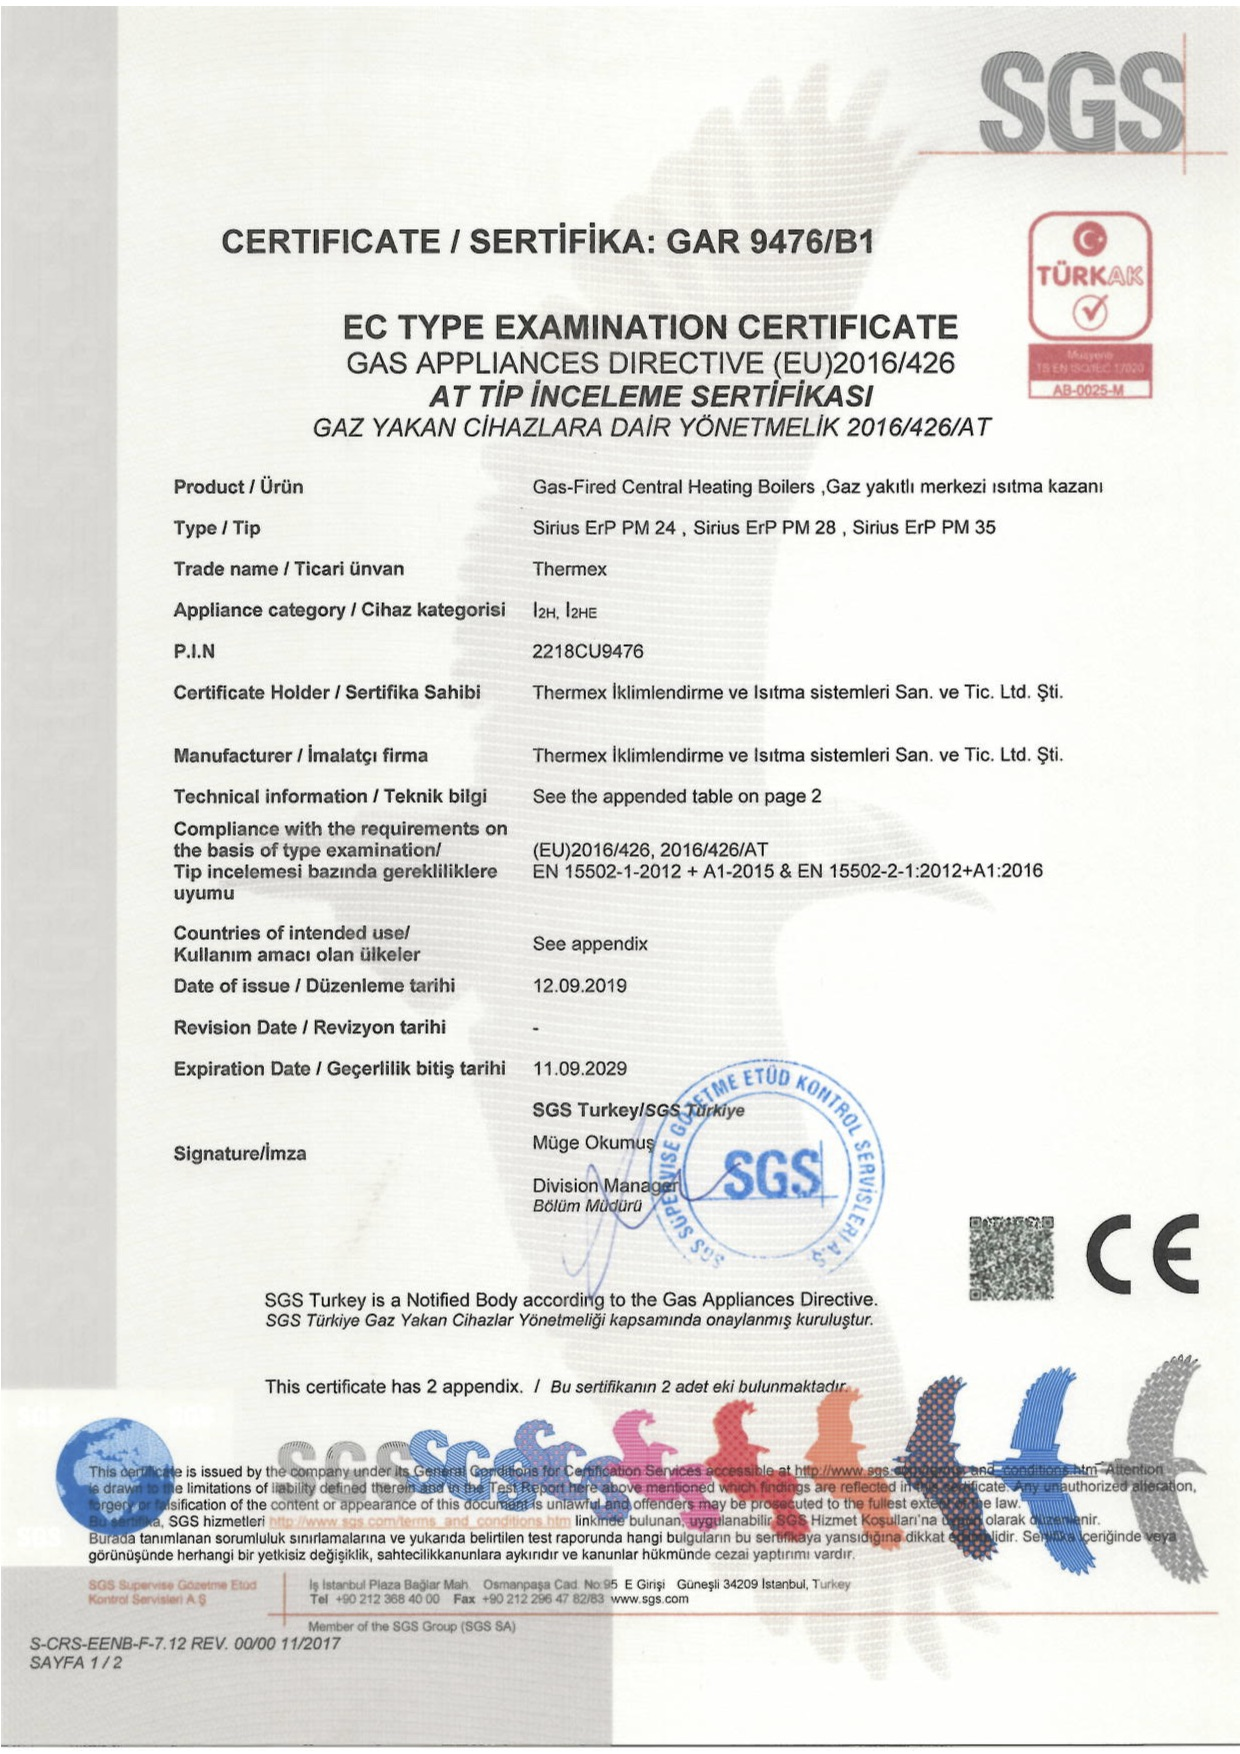 S-CRS-EE-F-31-Certificate-REV0200-thermex-SIRIUS